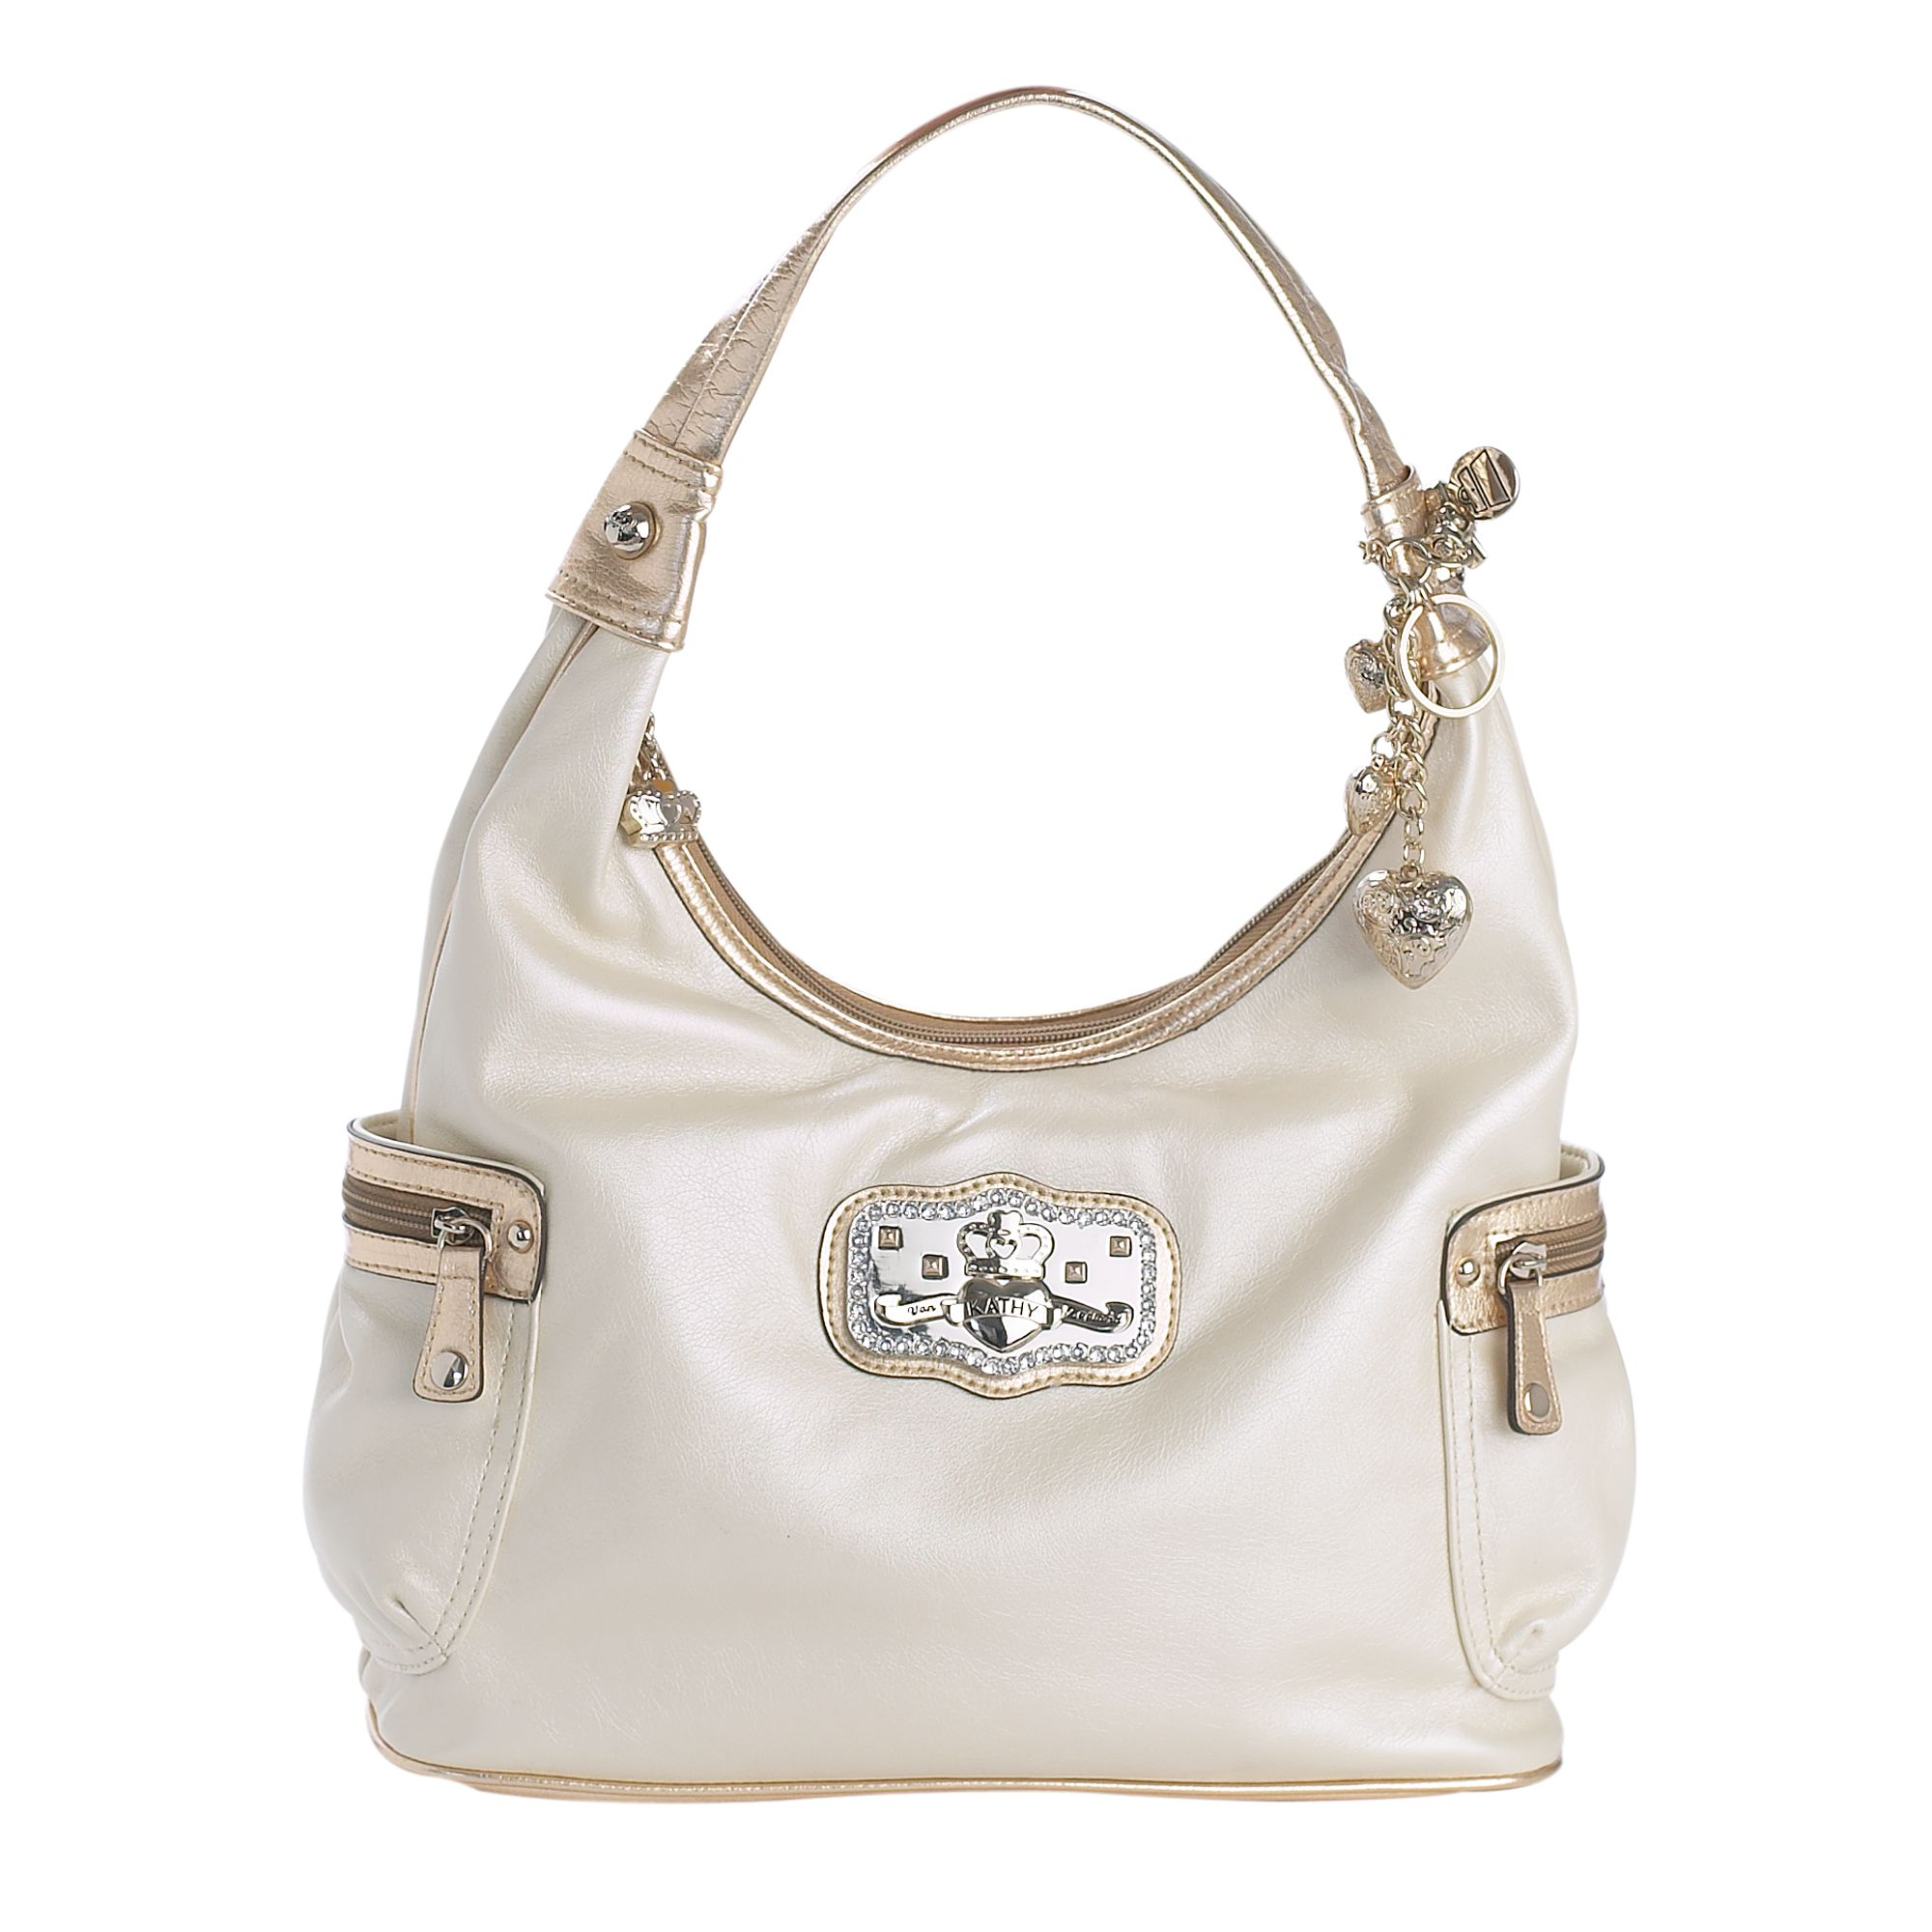 Studio 54 small pu hobo bag